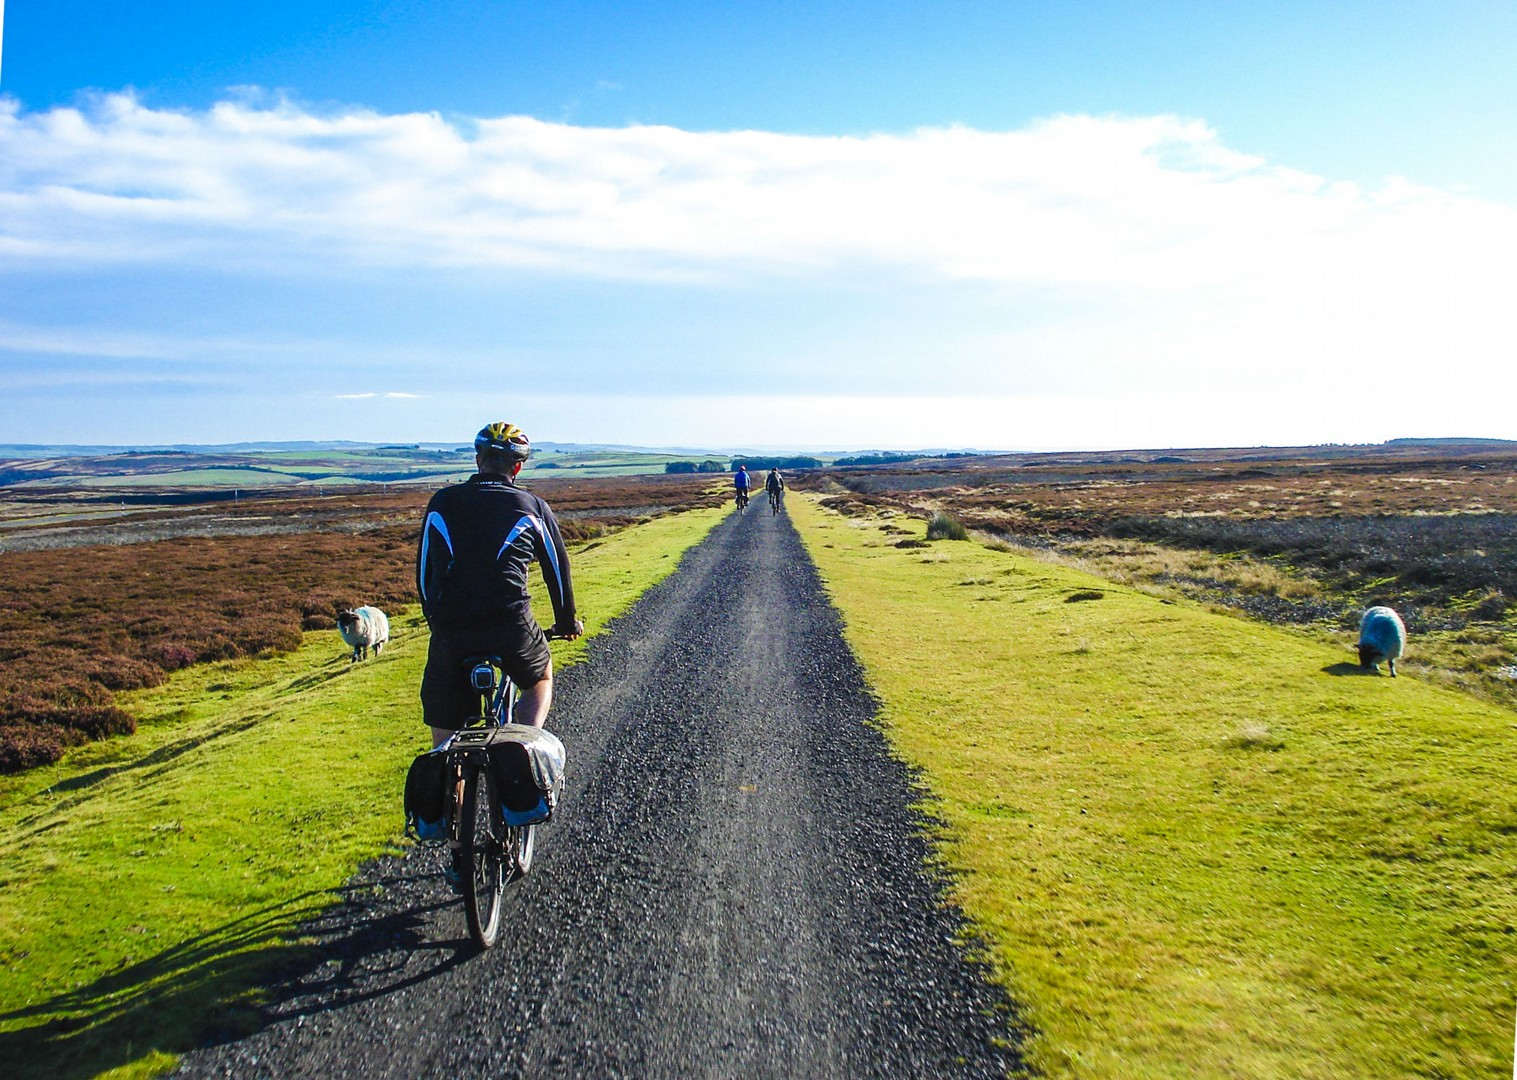 cycle-paths-authentic-uk-britain-3-days-self-guided-tour.jpg - UK - C2C - Coast to Coast 3 Days Cycling - Self-Guided Leisure Cycling Holiday - Leisure Cycling